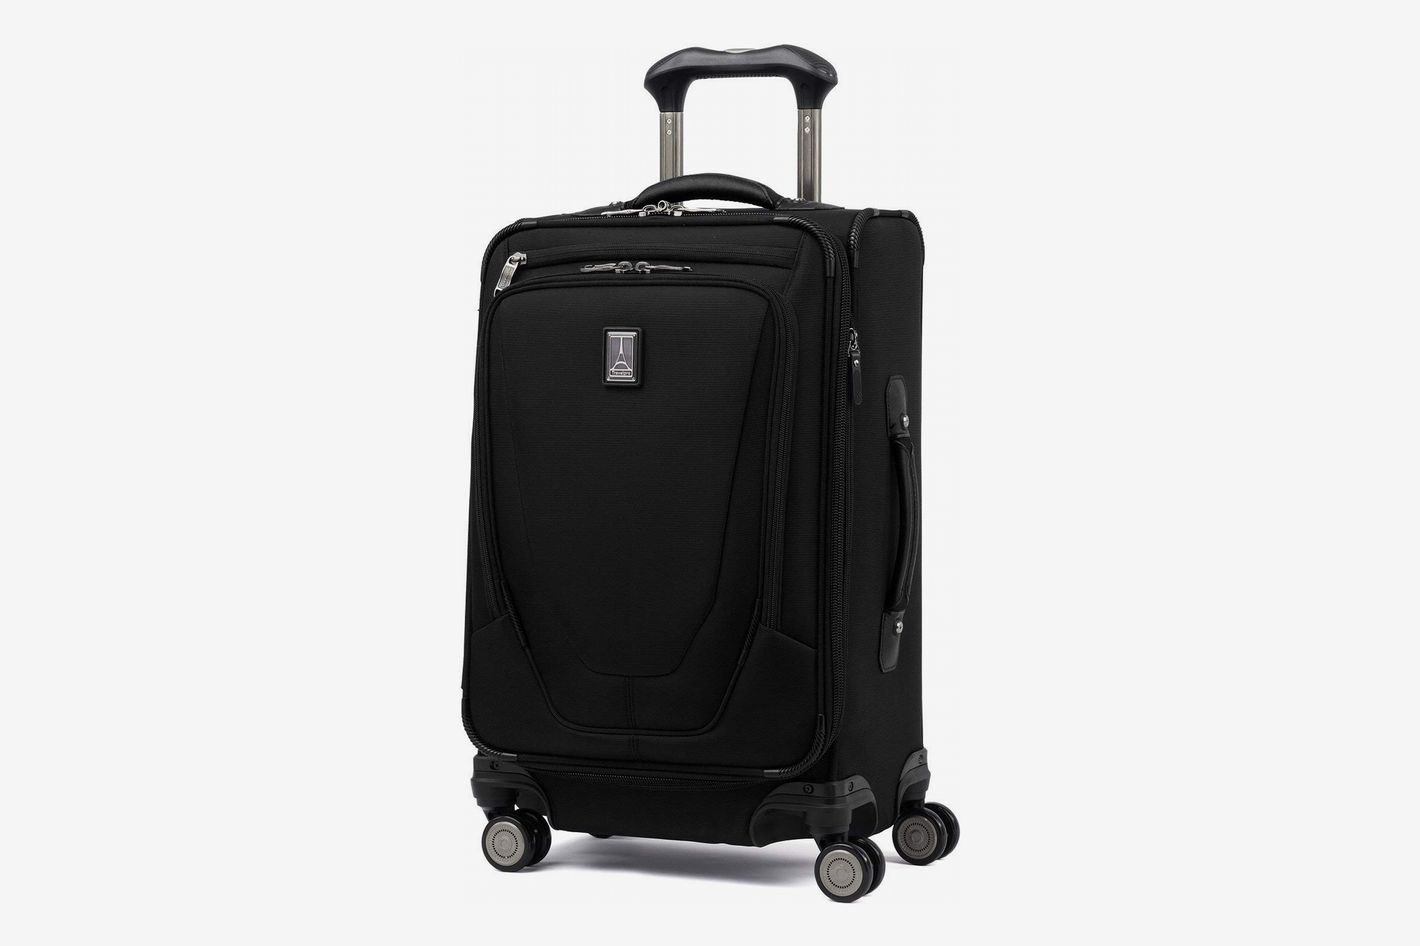 Travelpro Luggage Crew 11 21 Carry On Expandable Spinner W Suiter And USB